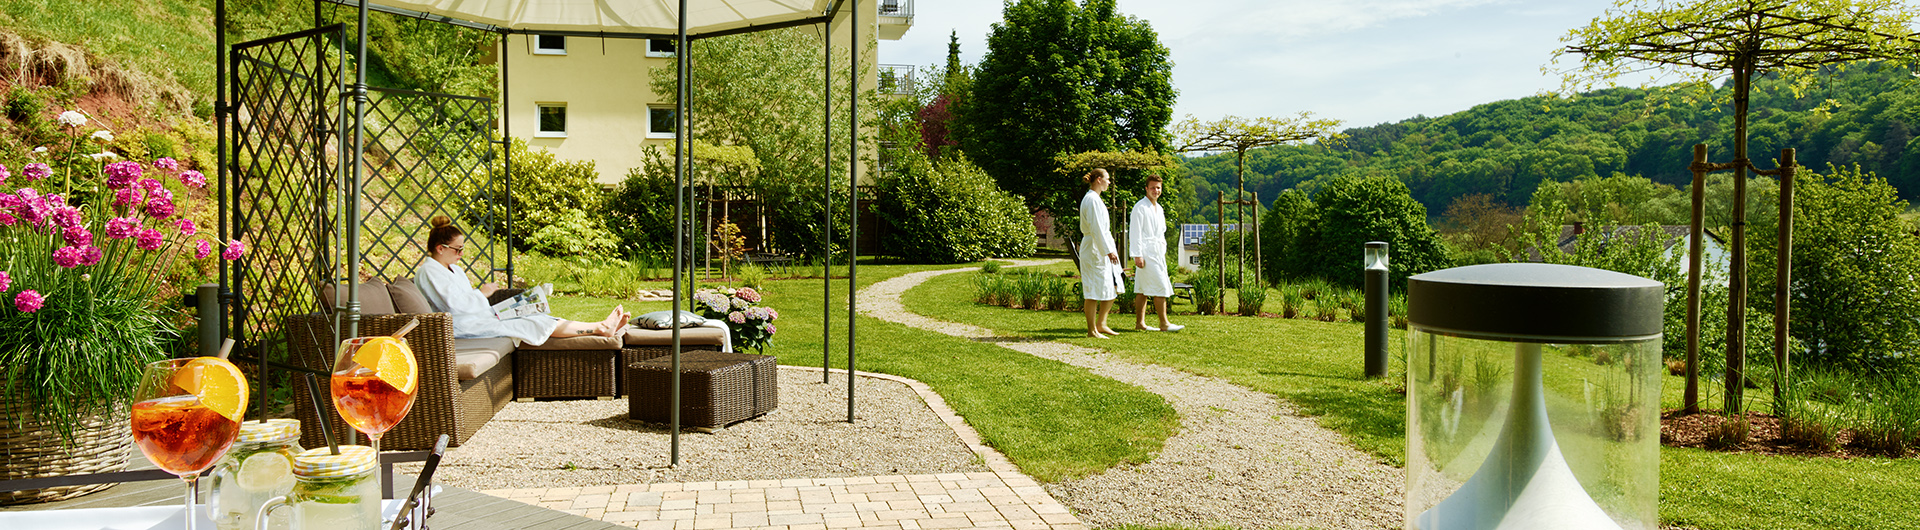 Header-Garten_Sonnenwiese_Wellness